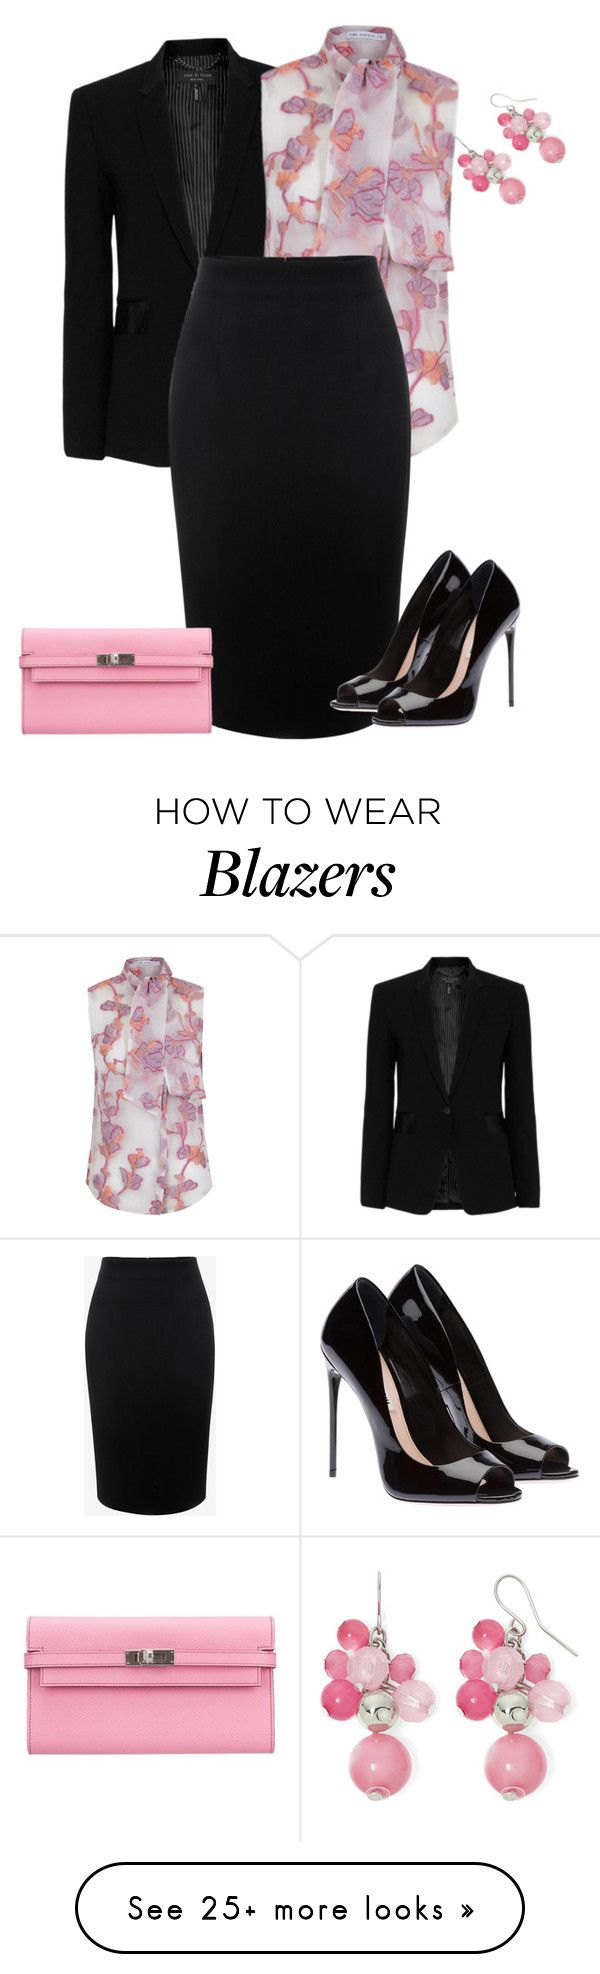 """""""outfit 3672"""" by natalyag on Polyvore featuring rag & bone, The 2nd Skin Co., Alexander McQueen, Hermès and Mixit"""